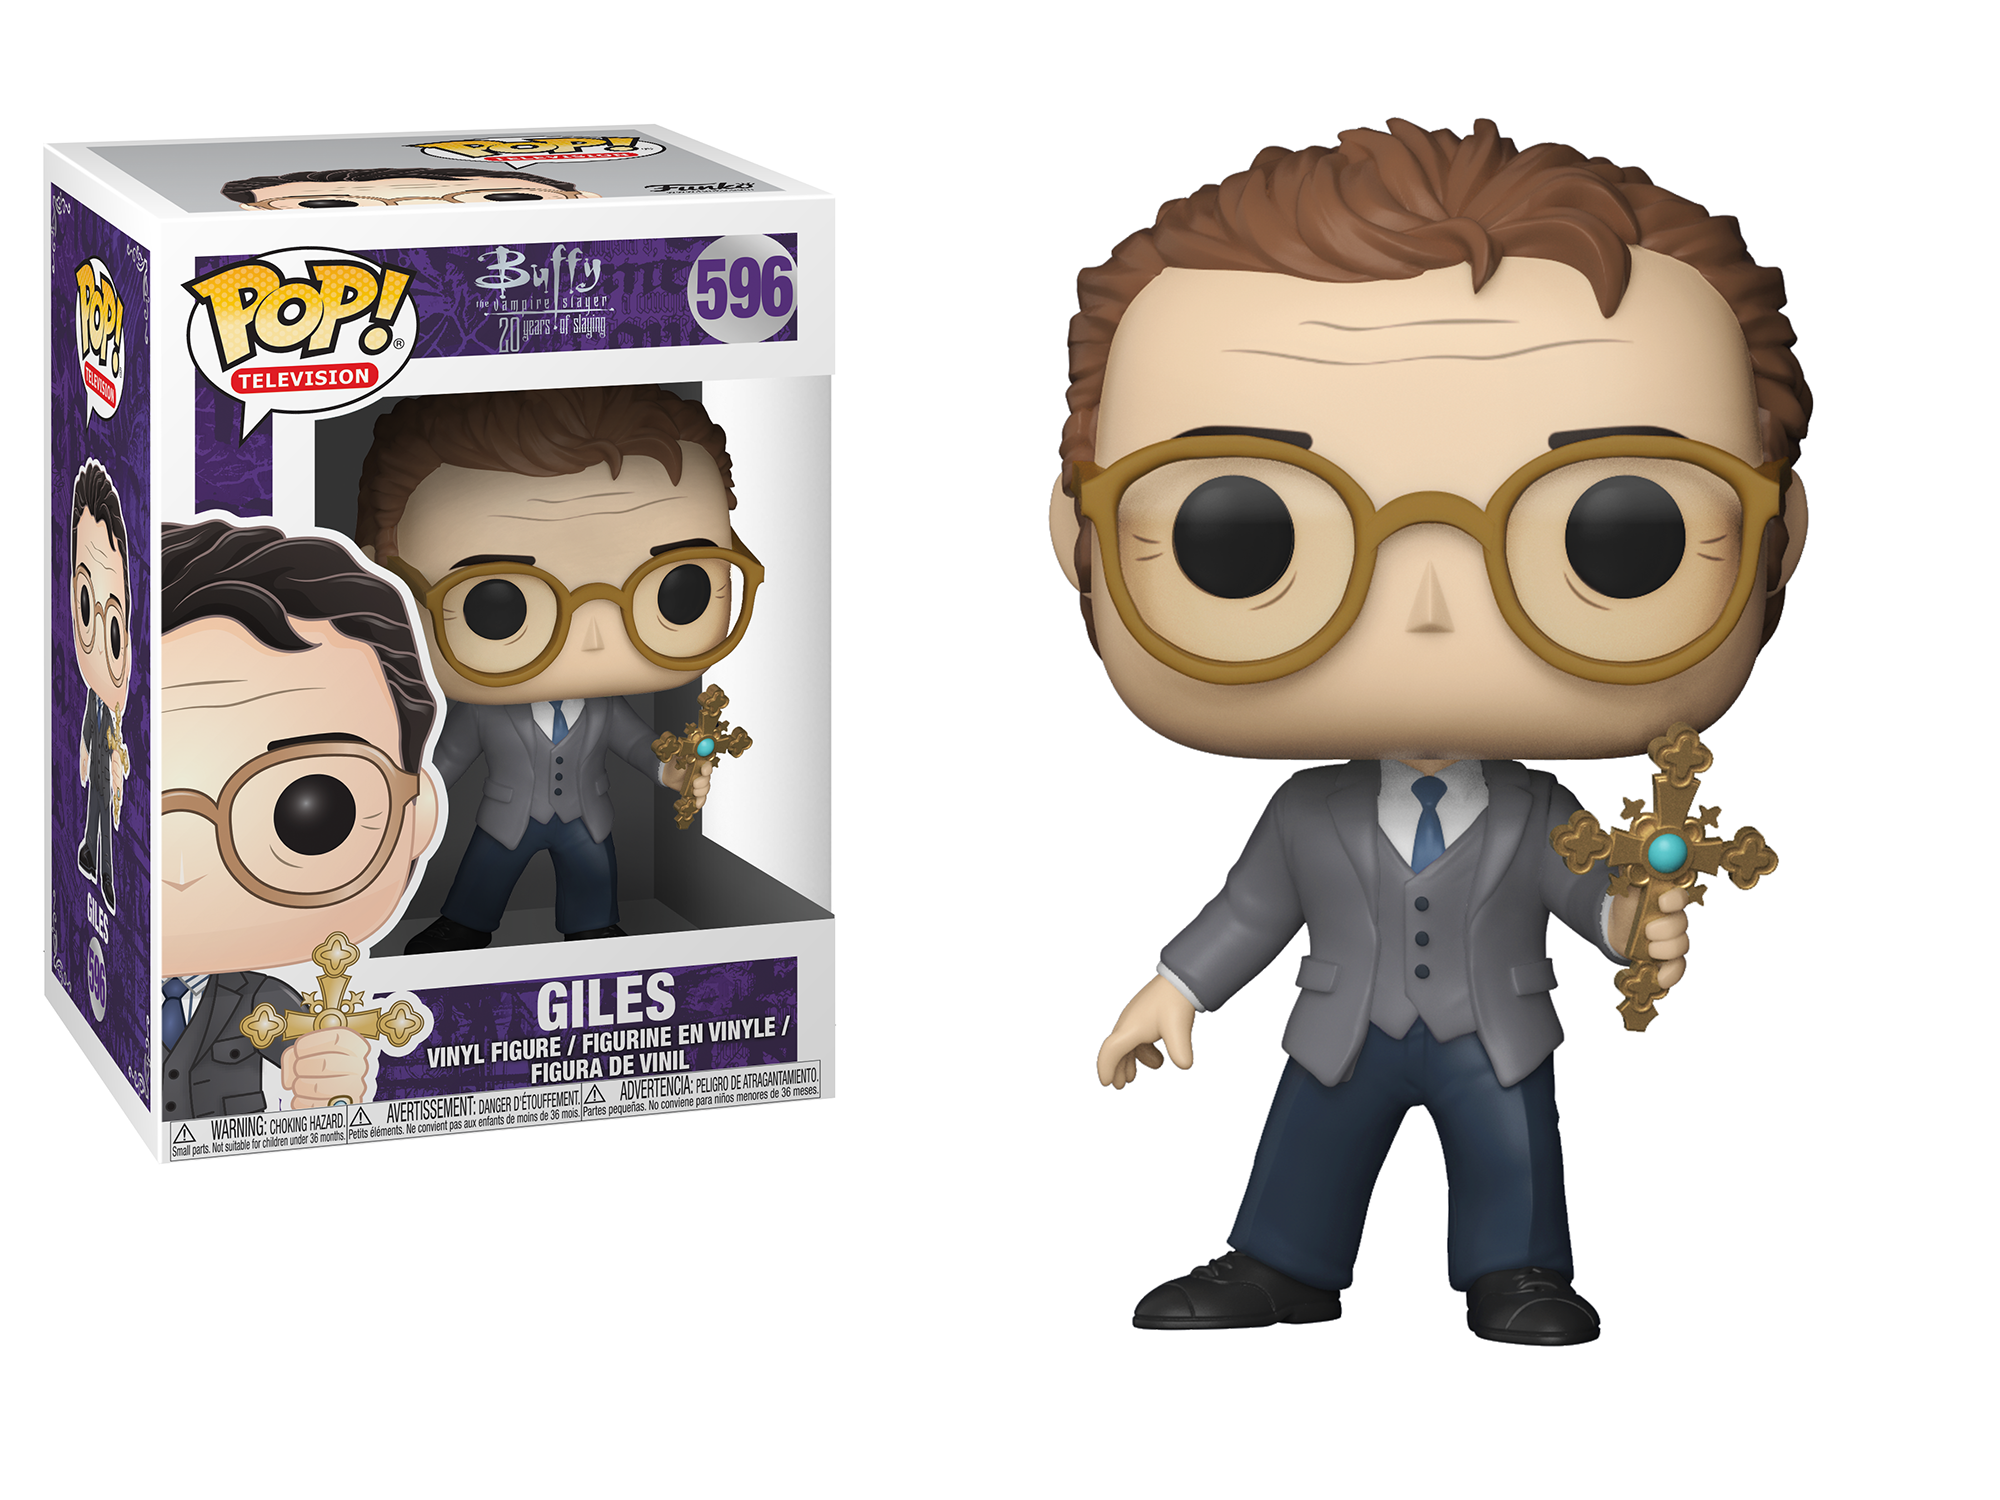 Funko Pop - Buffy The Vampire Slayer 25th Anniversary - Rupert Giles